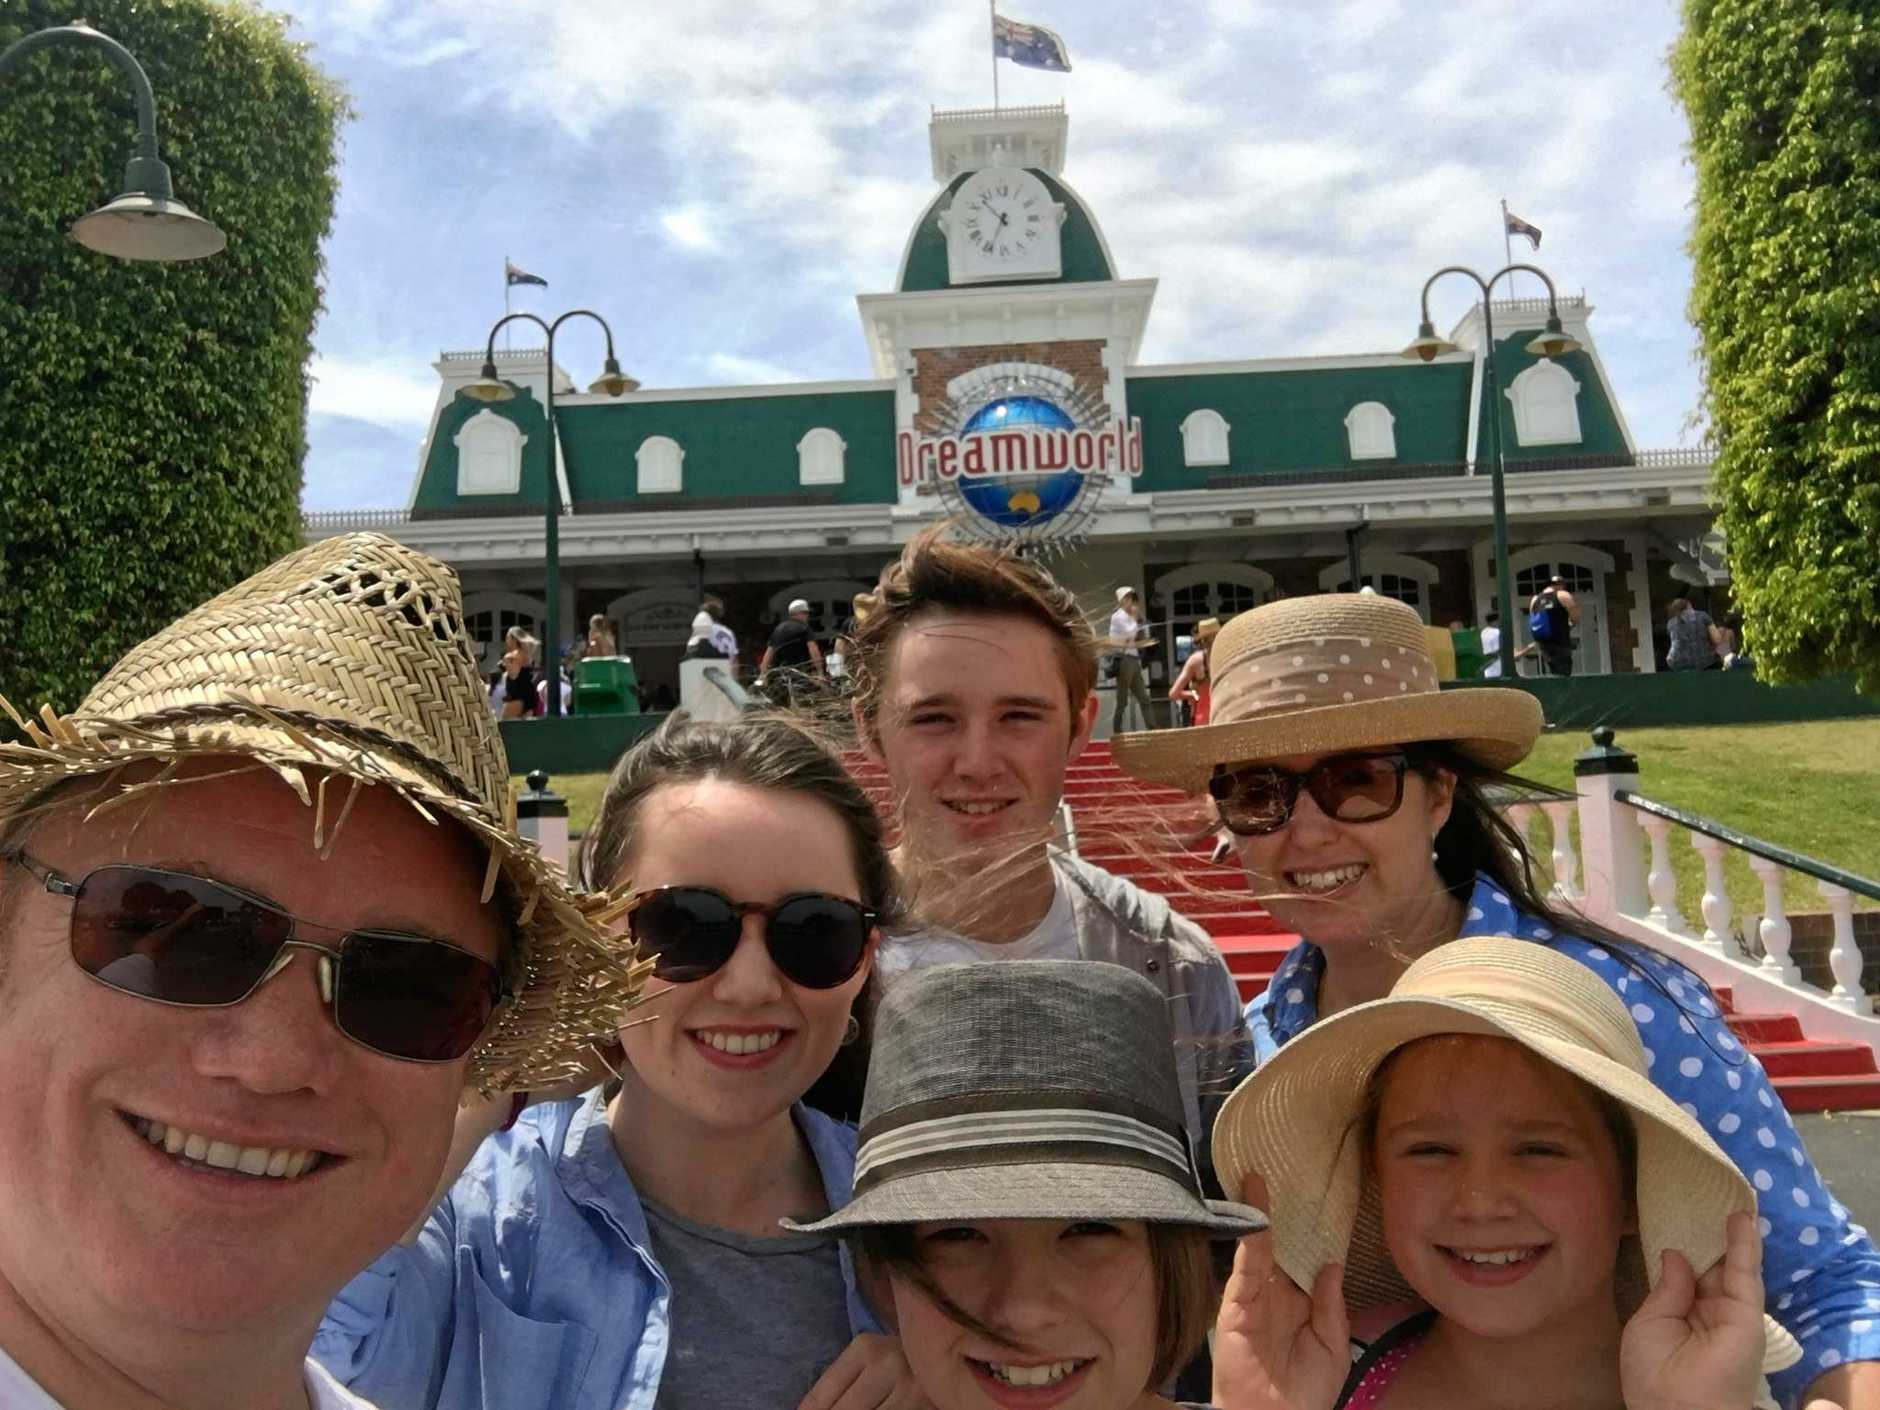 Rebecca Moore (right back) with husband, Tony (left) and children going into Dreamworld